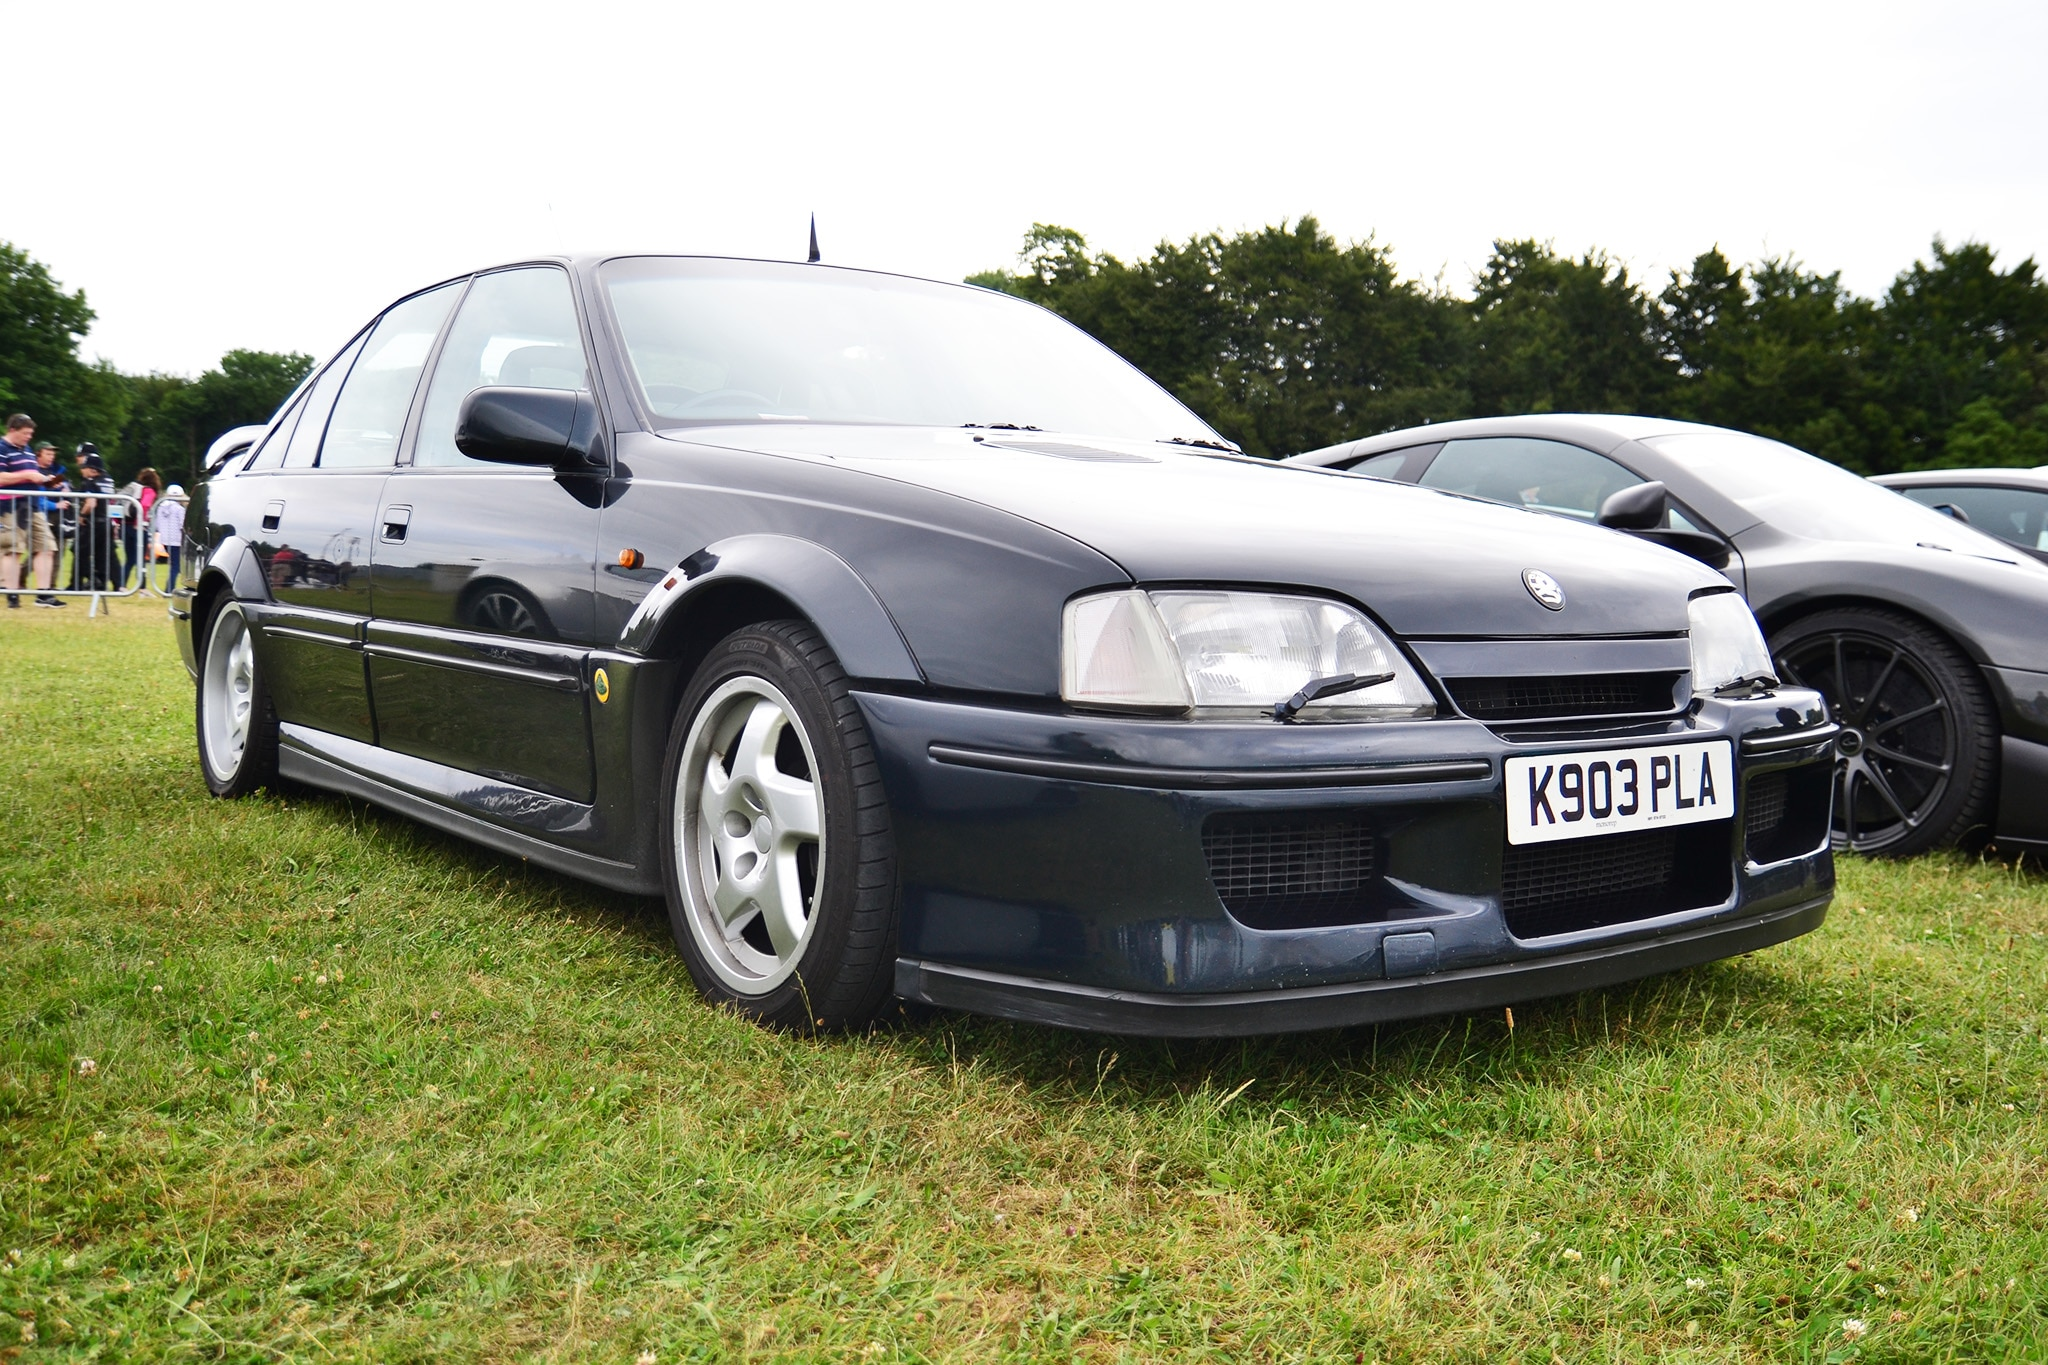 Lotus-Carlton-Goodwood Surprising Lotus Carlton Engine for Sale Cars Trend